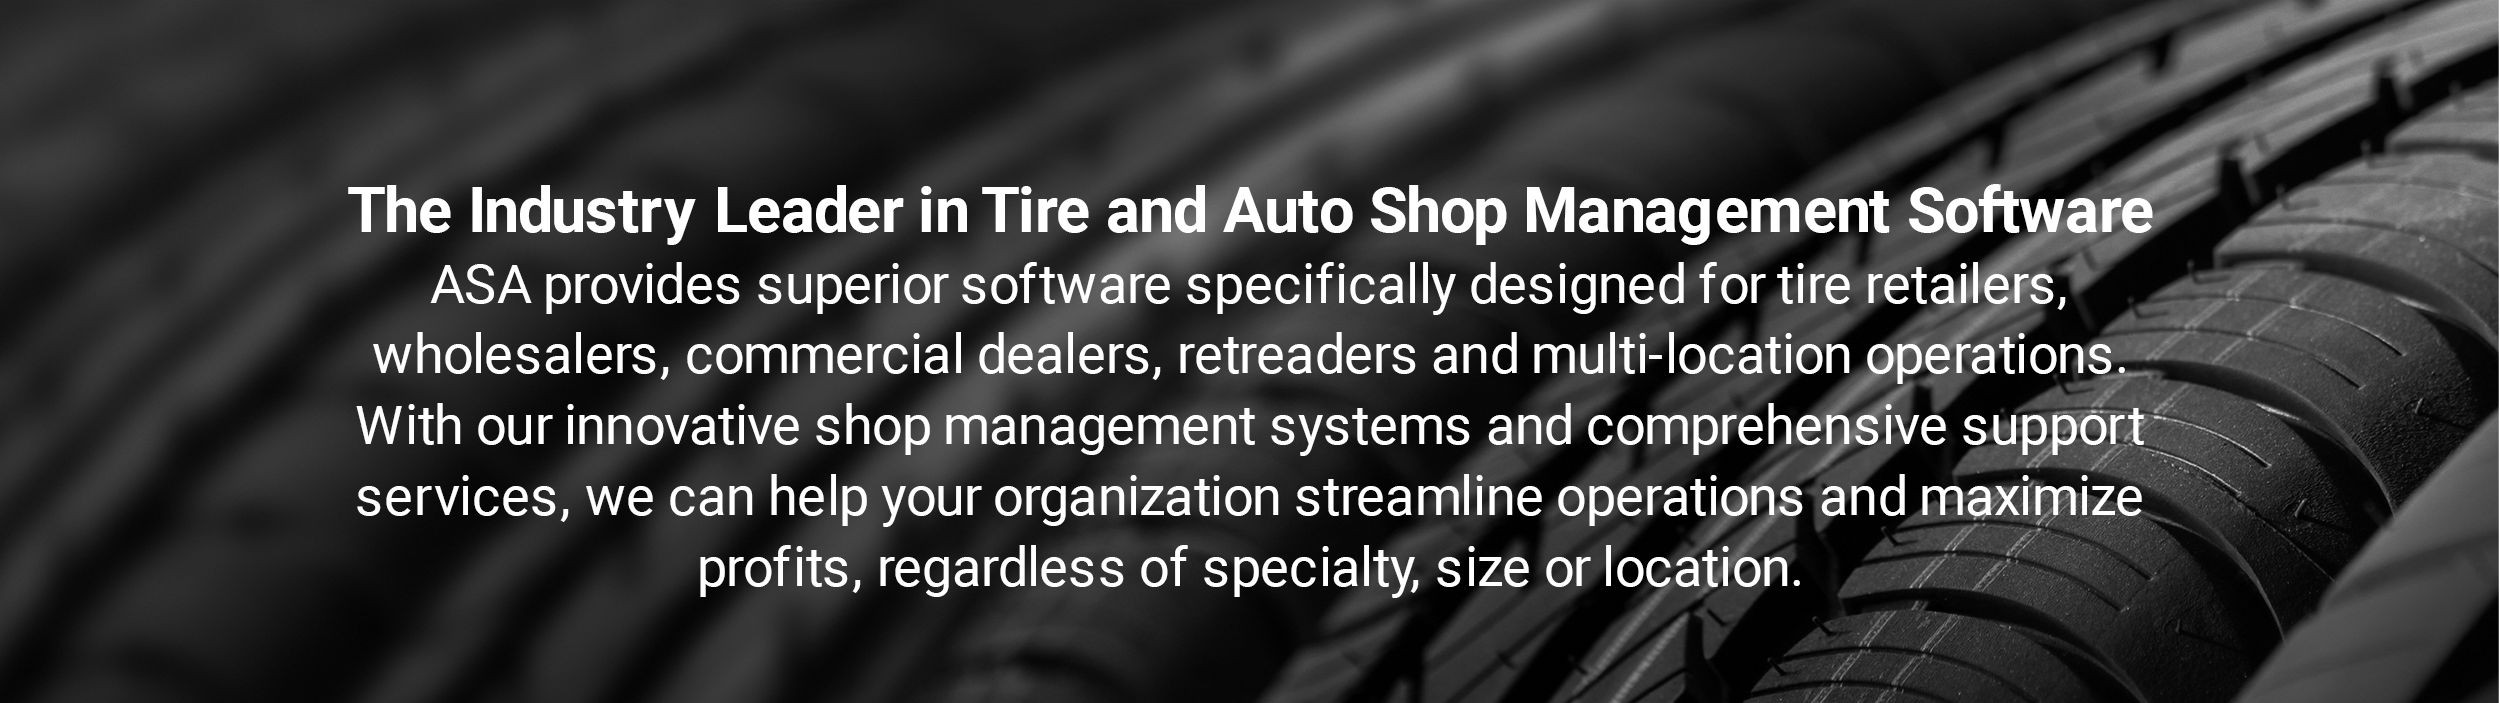 The Industry Leader in Tire and Auto Shop Management Software